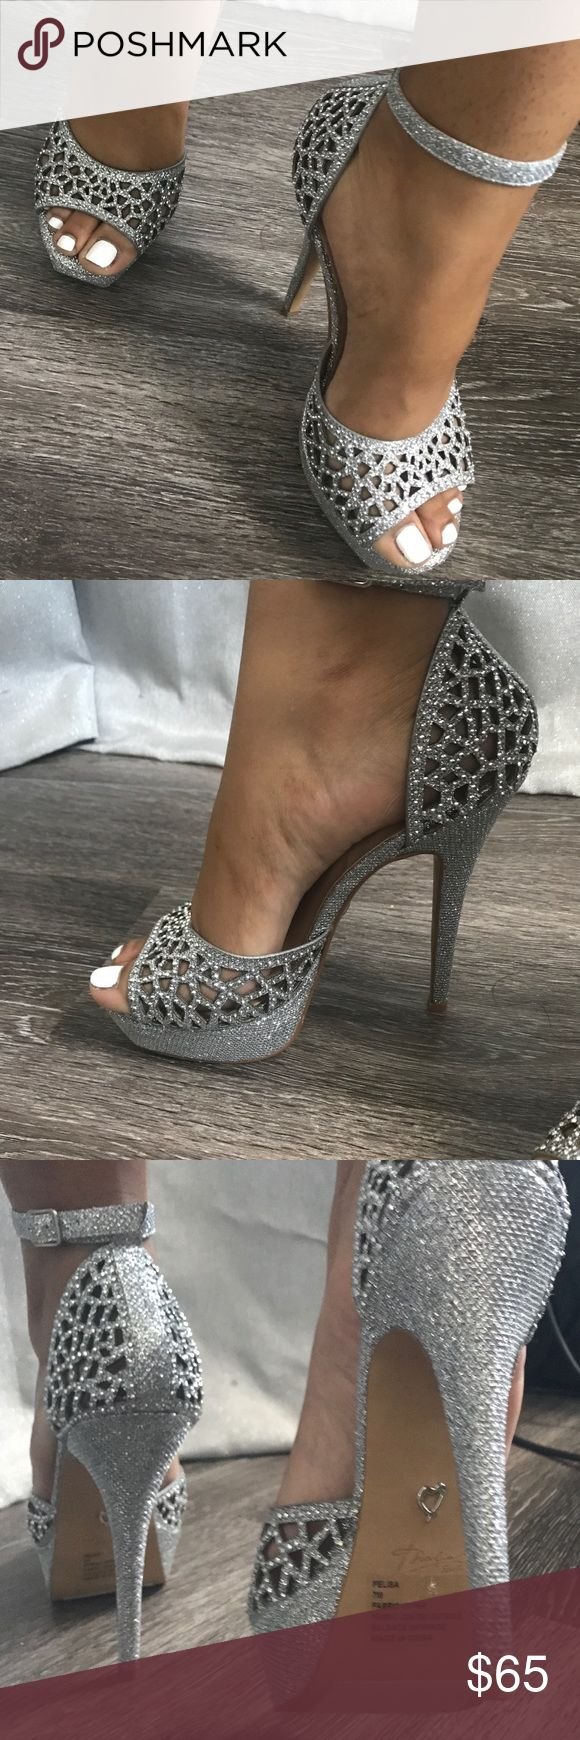 Silver sparkly heels Almost brand new silver heels bought directly from Macy's 34th st. Worn once .  These are a size 7 but can fit  a 7.5 Matches pink sparkly prom dress I have posted . Shoes are in  more than excellent condition. Macy's Shoes Heels #promshoessilver